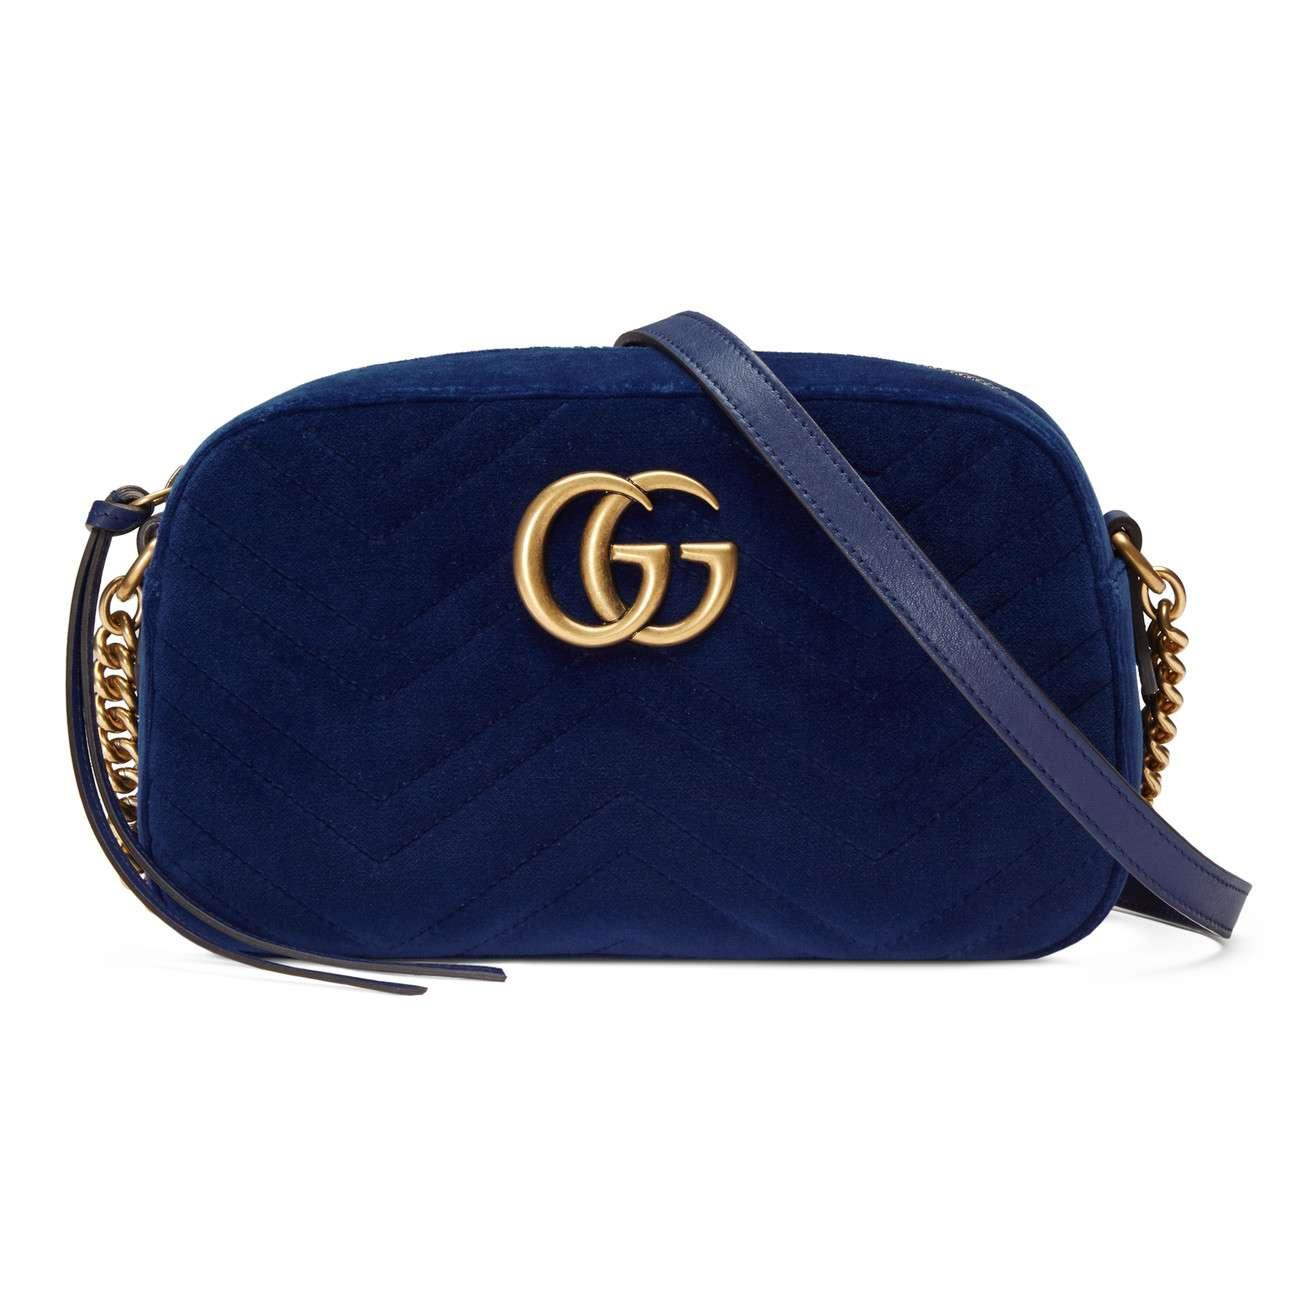 6f03580cc79a Gucci GG Marmont Velvet Small Shoulder Bag in Blue - Save 22% - Lyst